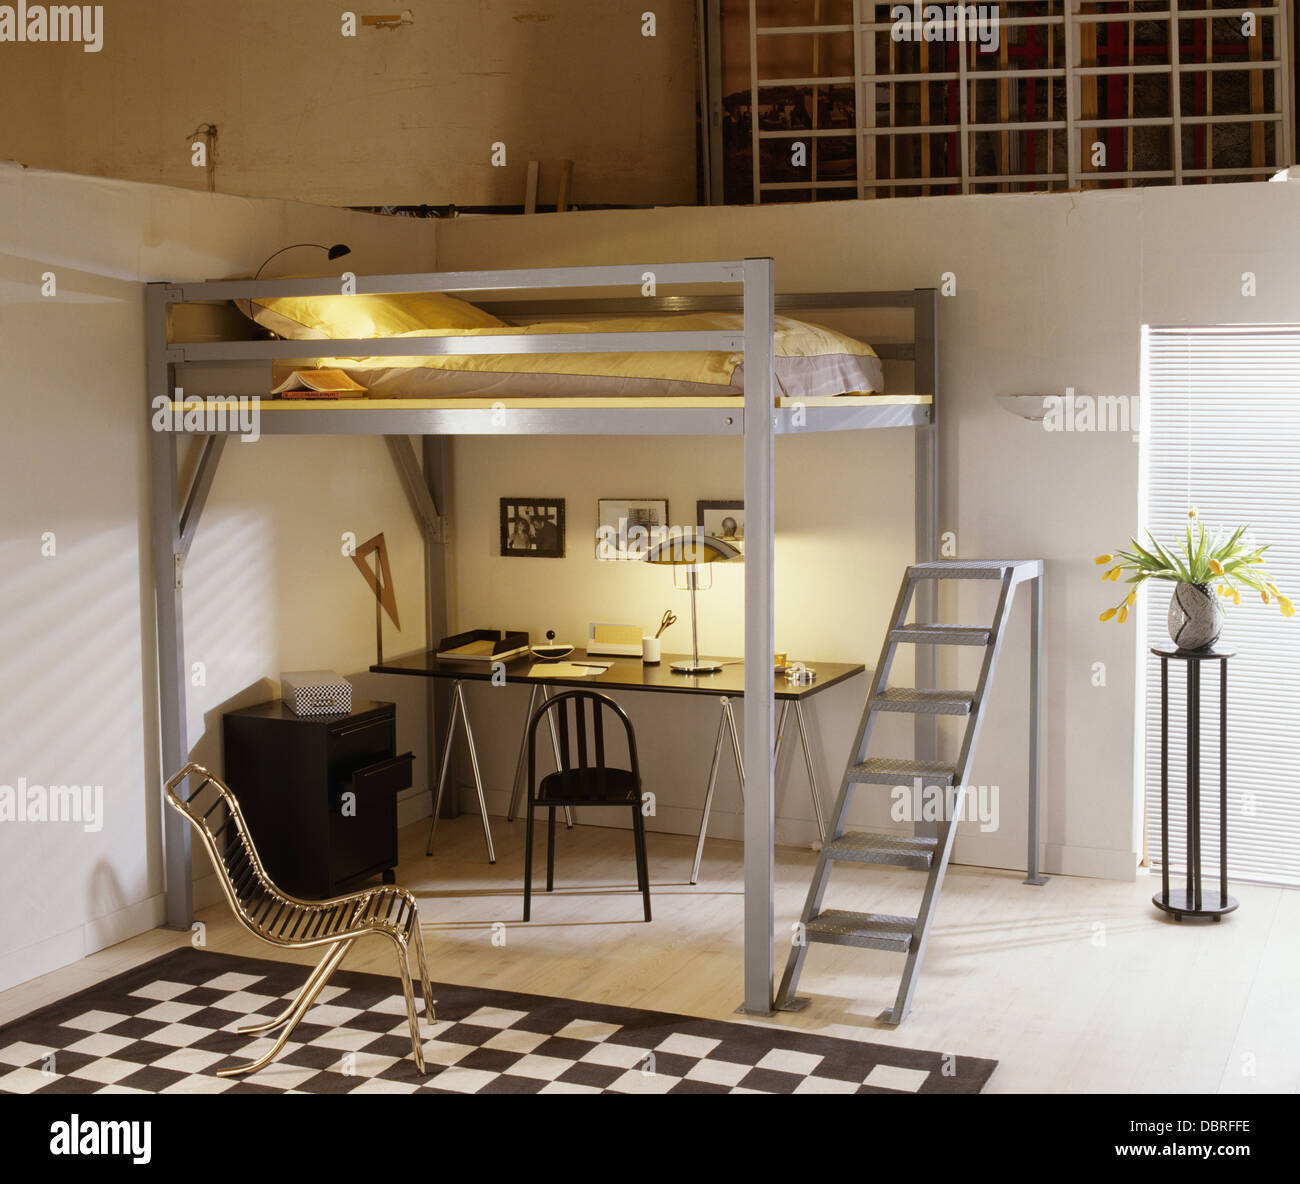 Metal Ladder To Bed On Small Platform Above Desk And Chair In Study Stock Photo Alamy